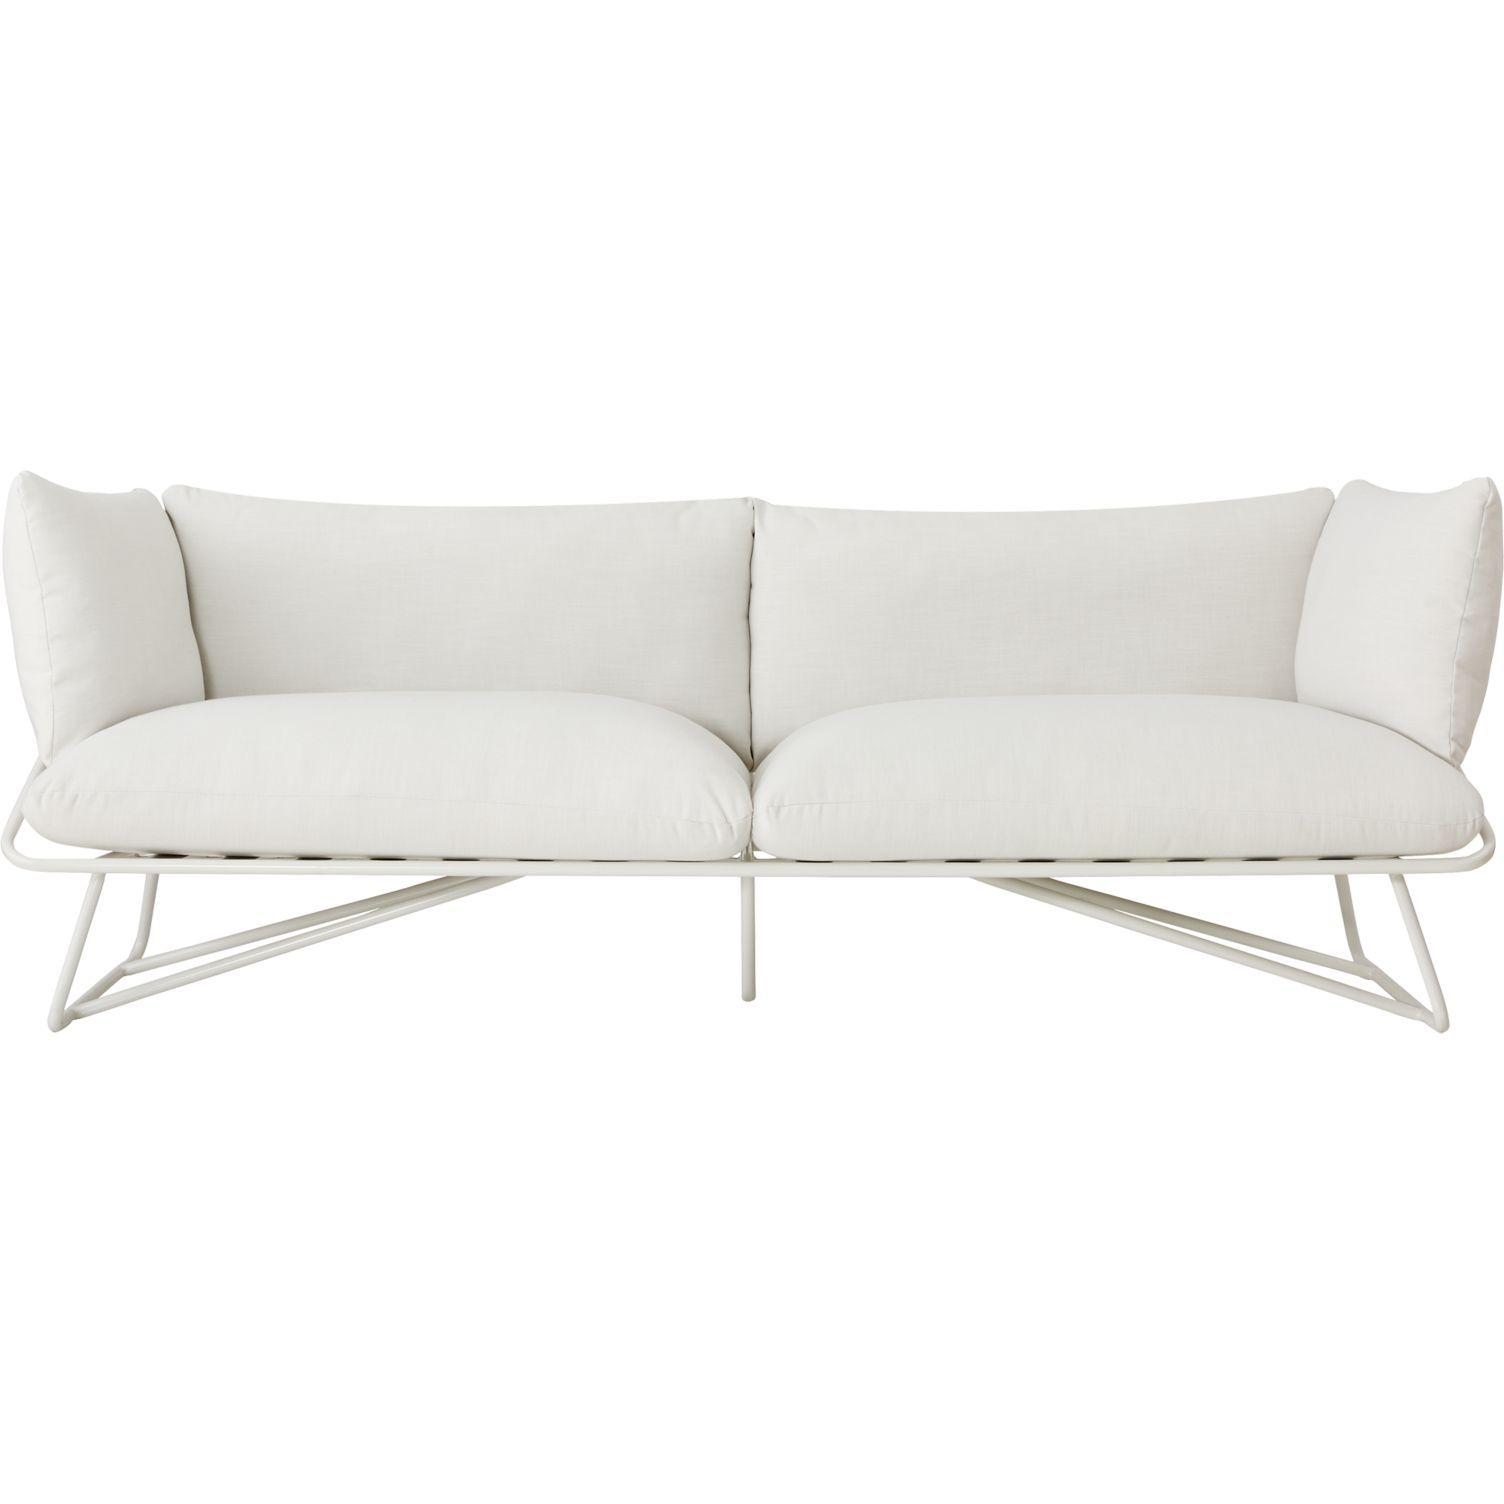 CB2 Pool Party White Outdoor Sofa